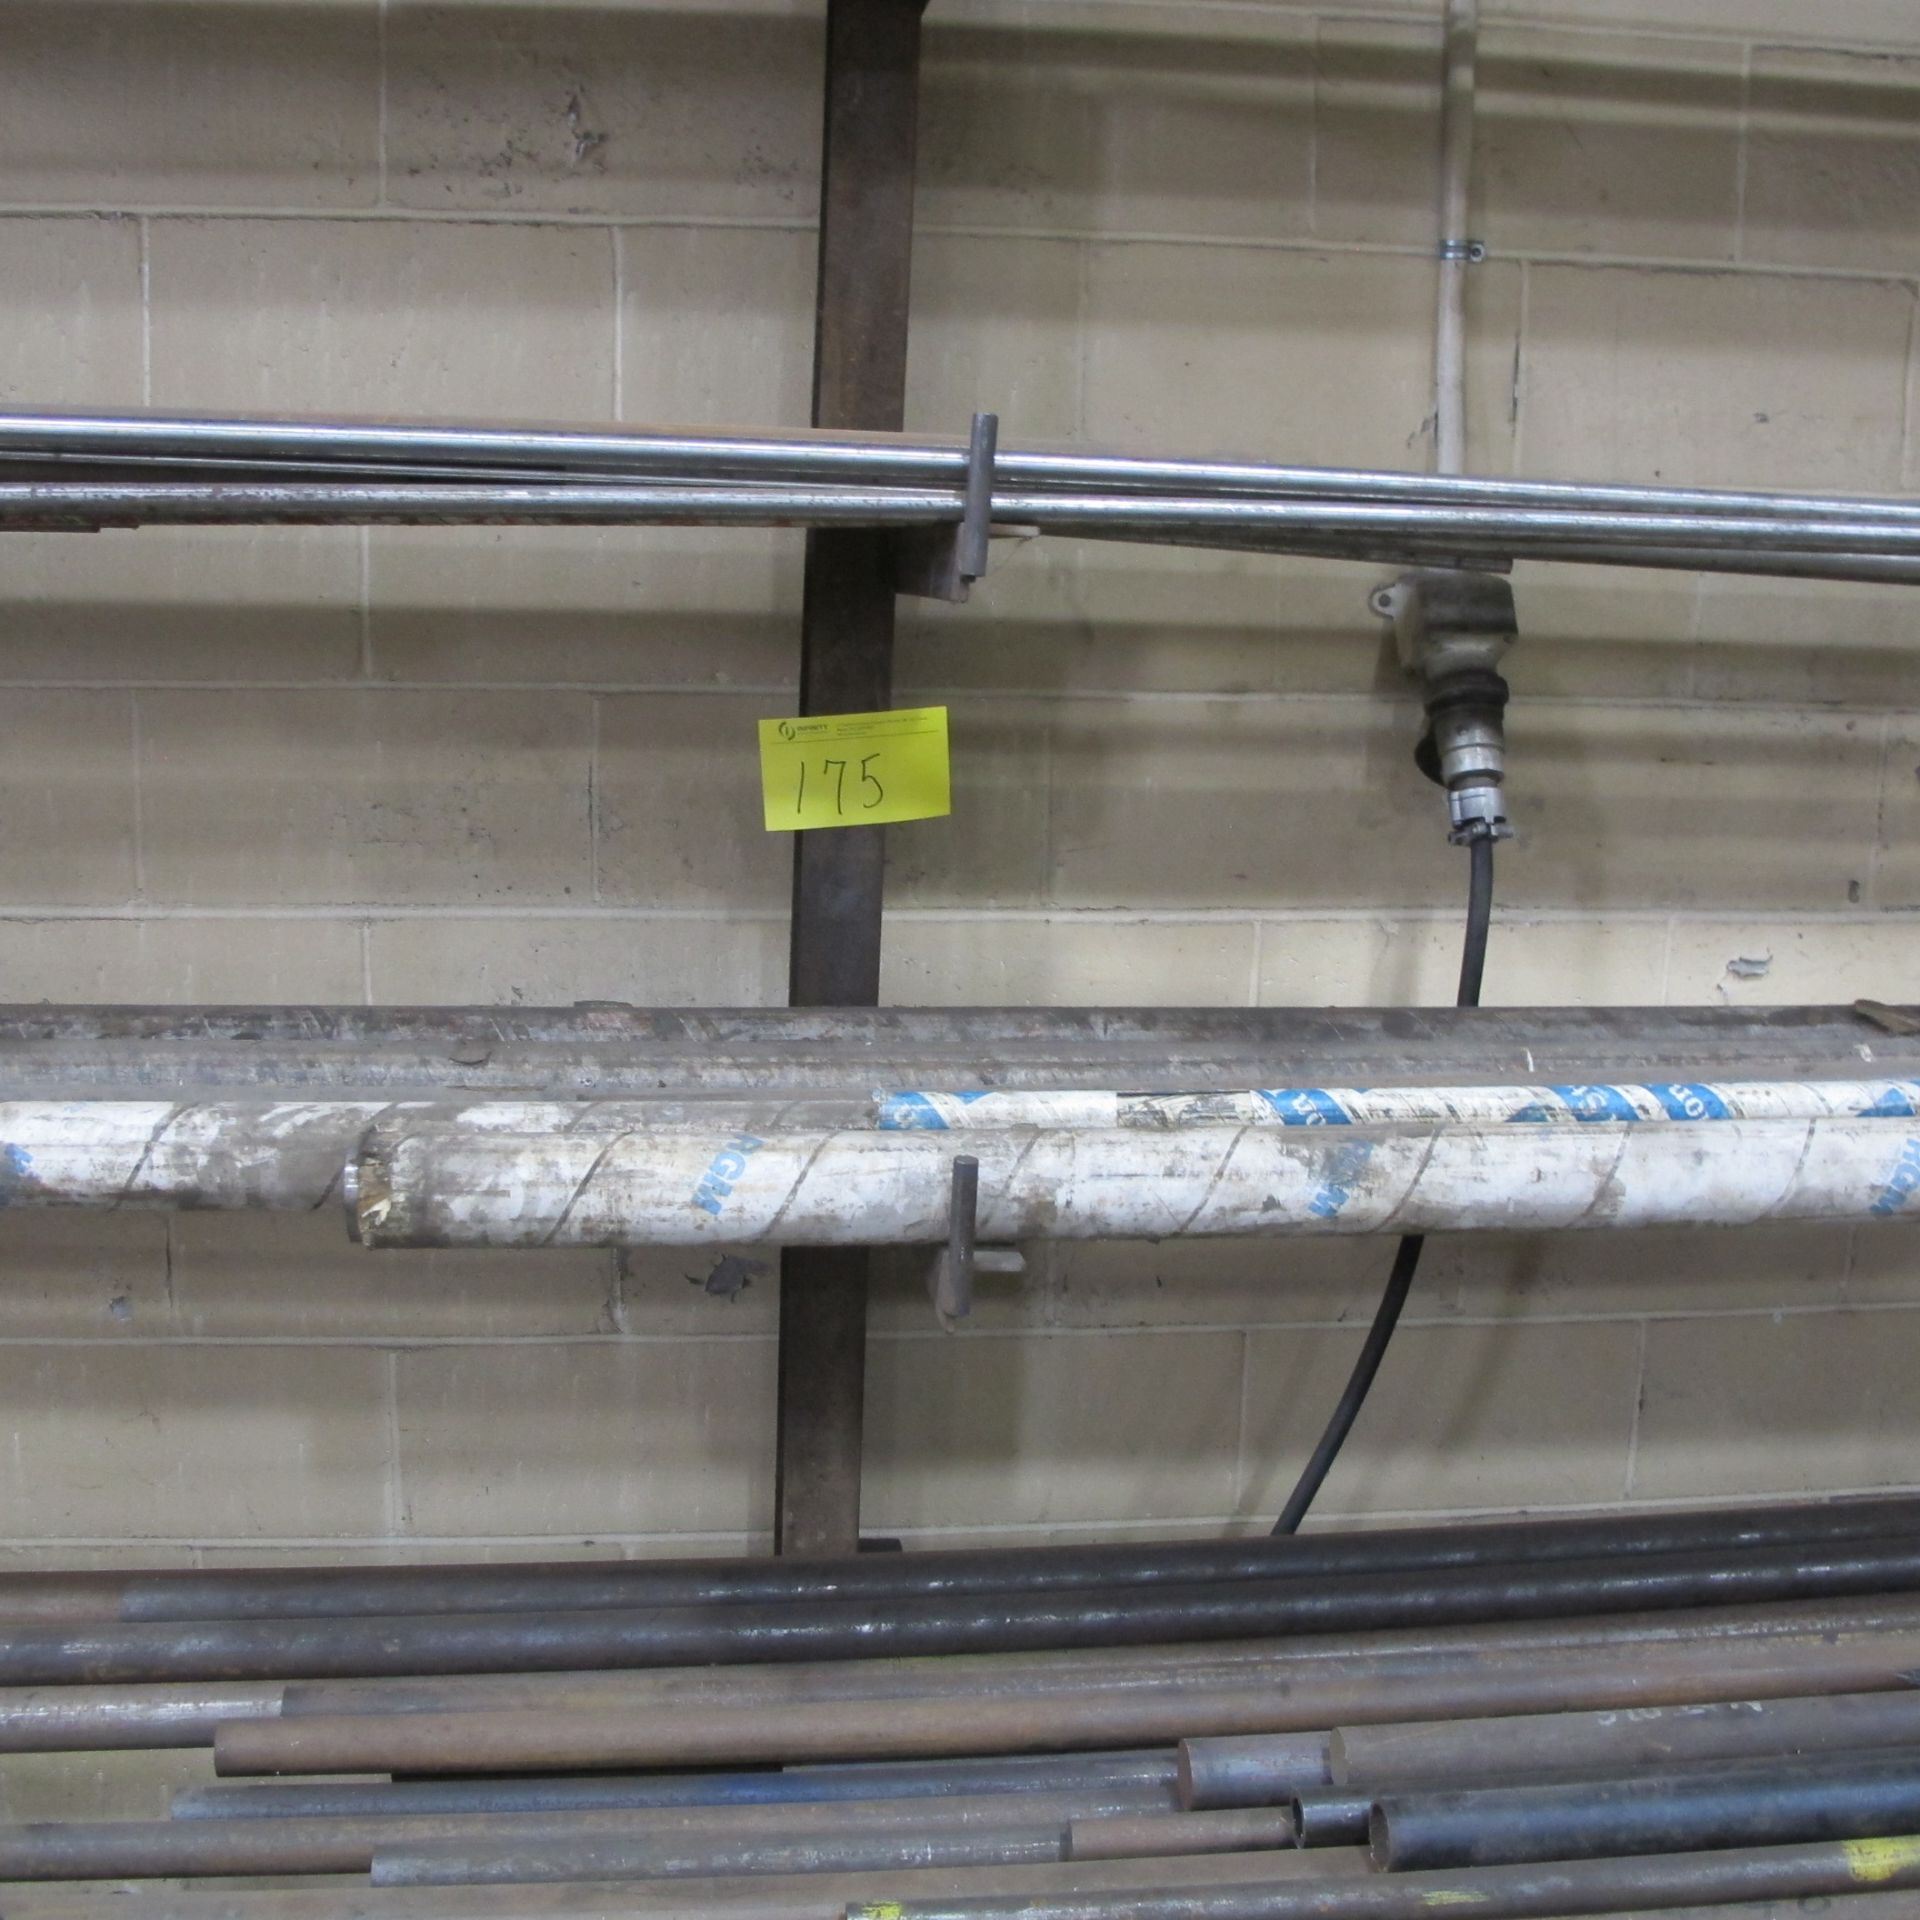 "Lot 175 - CANTELIVER STEEL RACK, 6 LEVELS W/BAR AND METAL CUTOFF STOCK (36""D X 8'T X 15'W)"